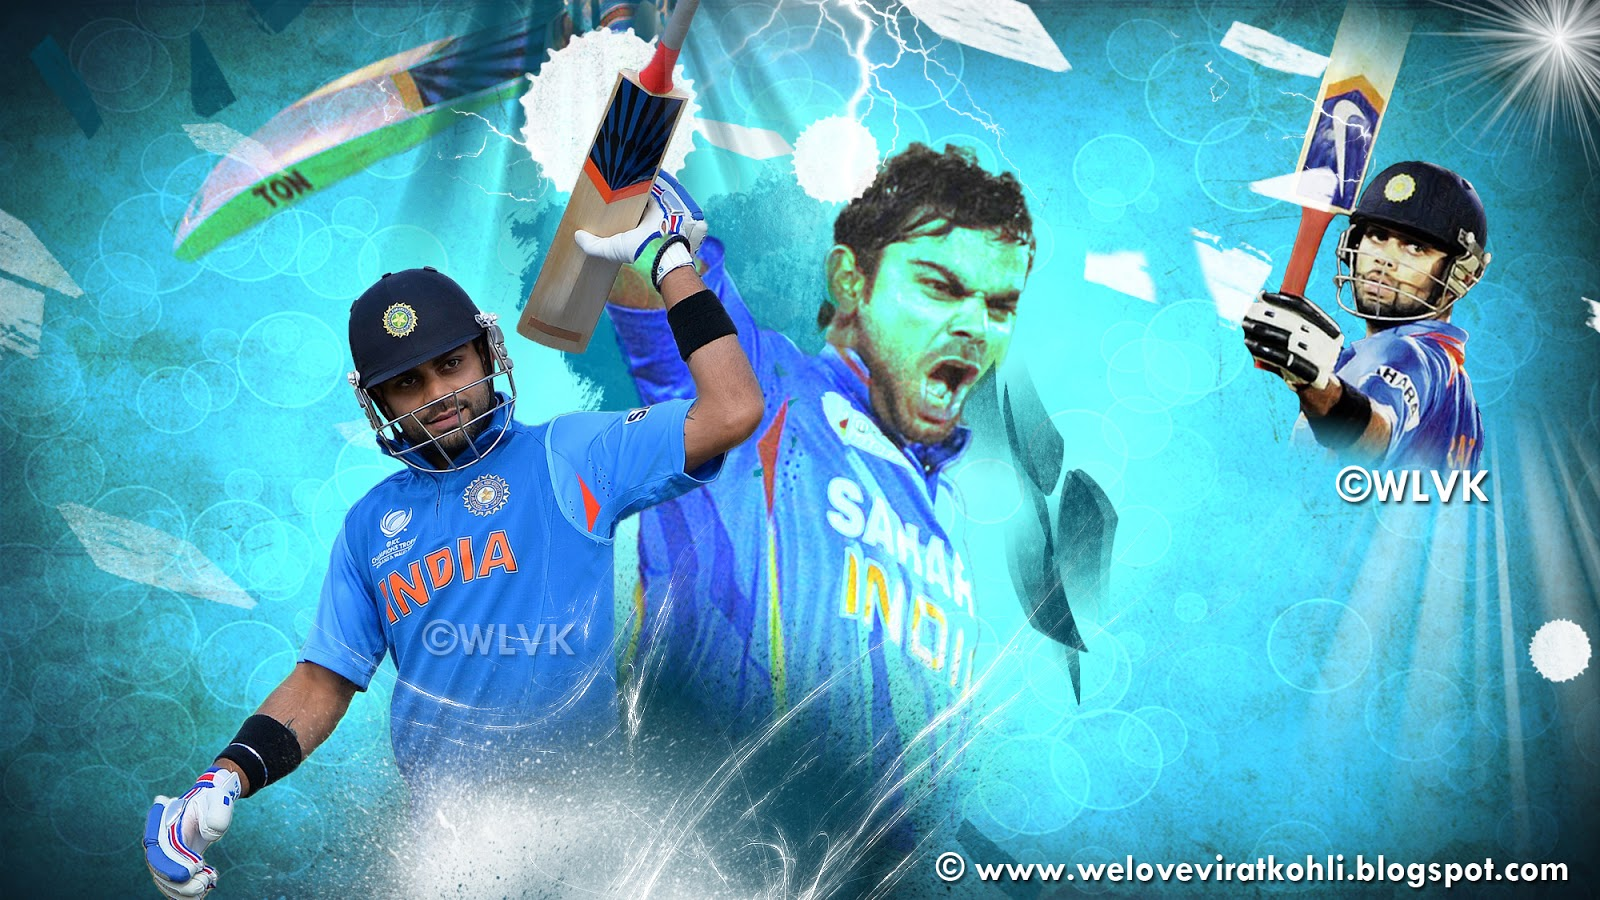 Virat Kohli Wallpapers Hd 2013